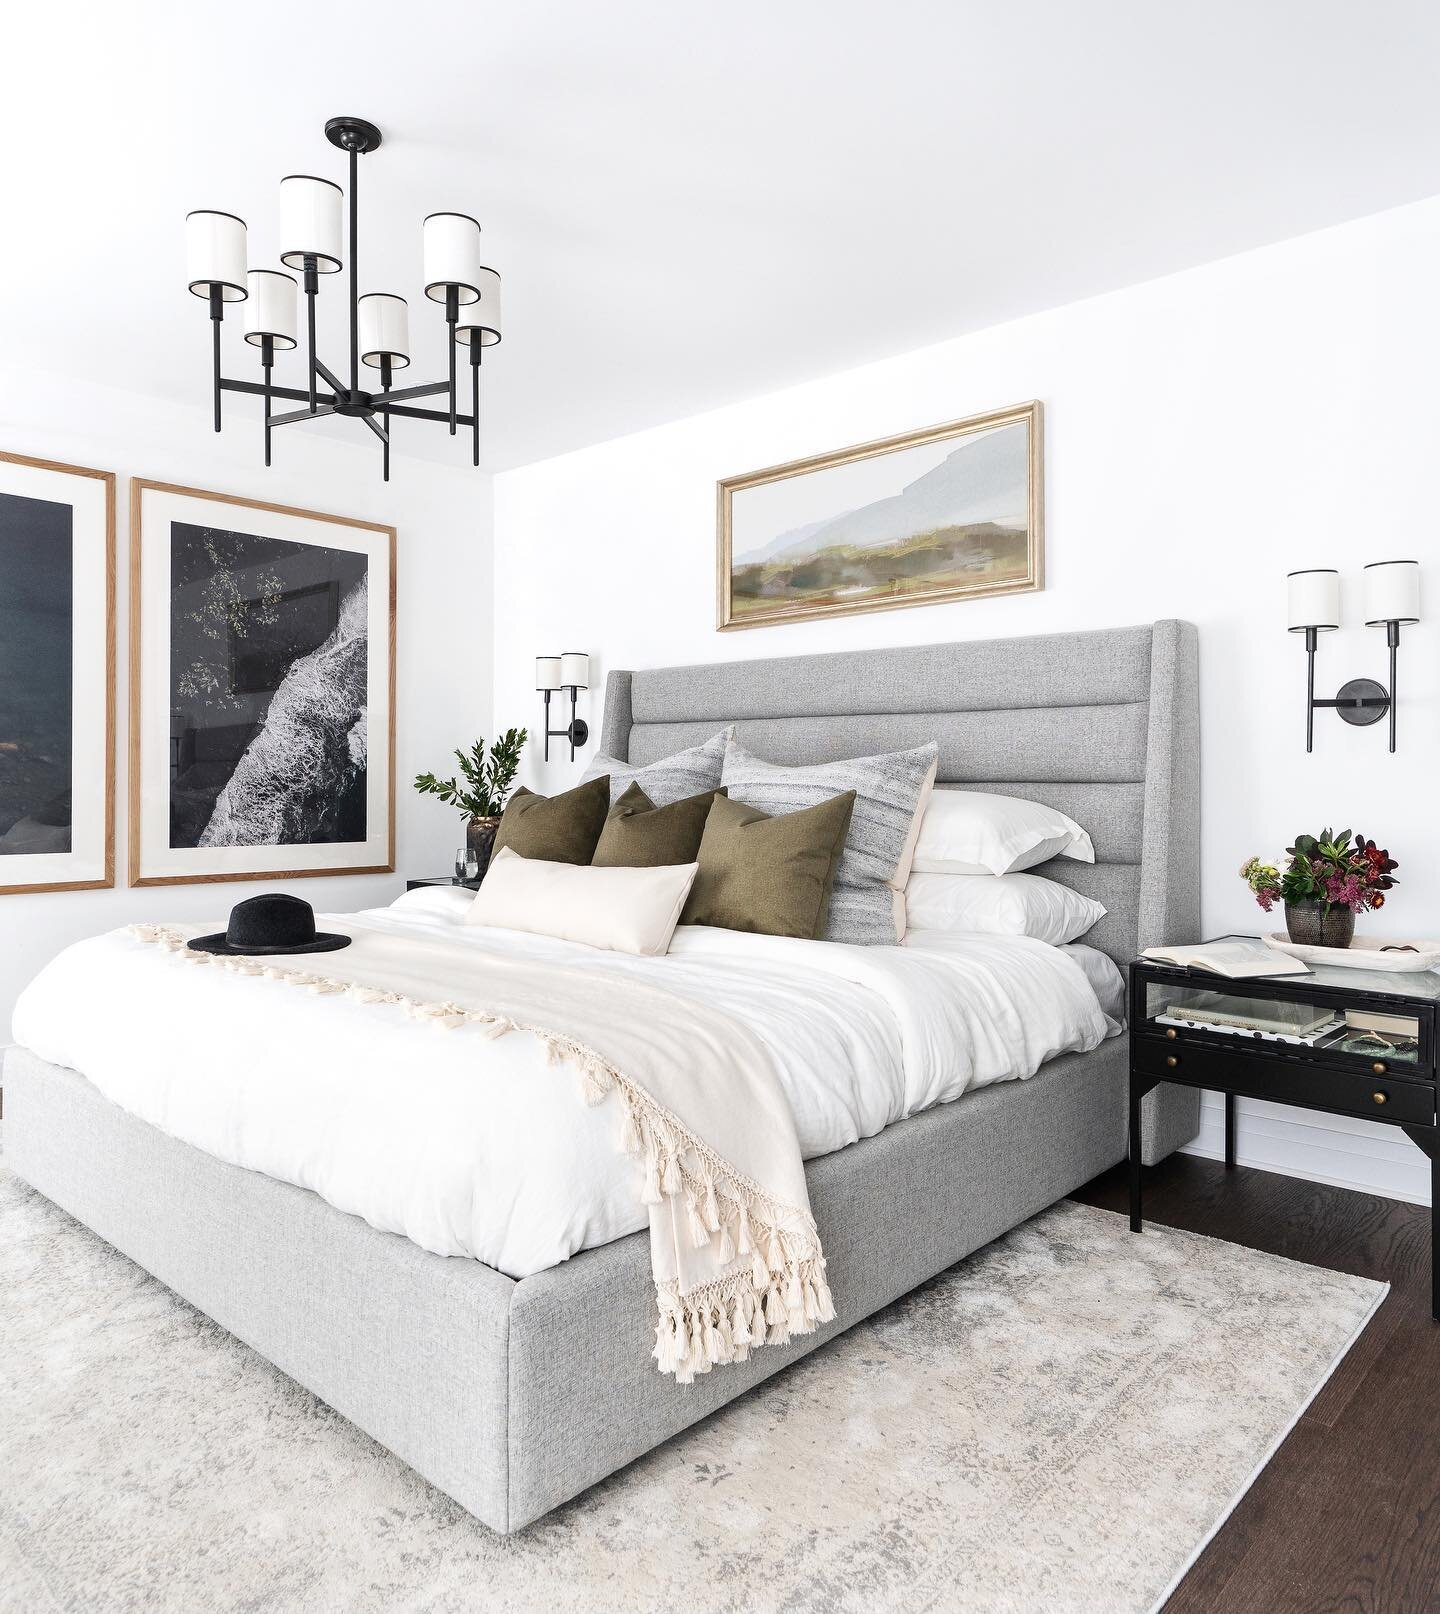 Shop the master bedroom |   Elgin Bed  ,   Abbey Double Wall Sconce  ,   Coyman Side Table  ,     Ariana Lumbar Pillow